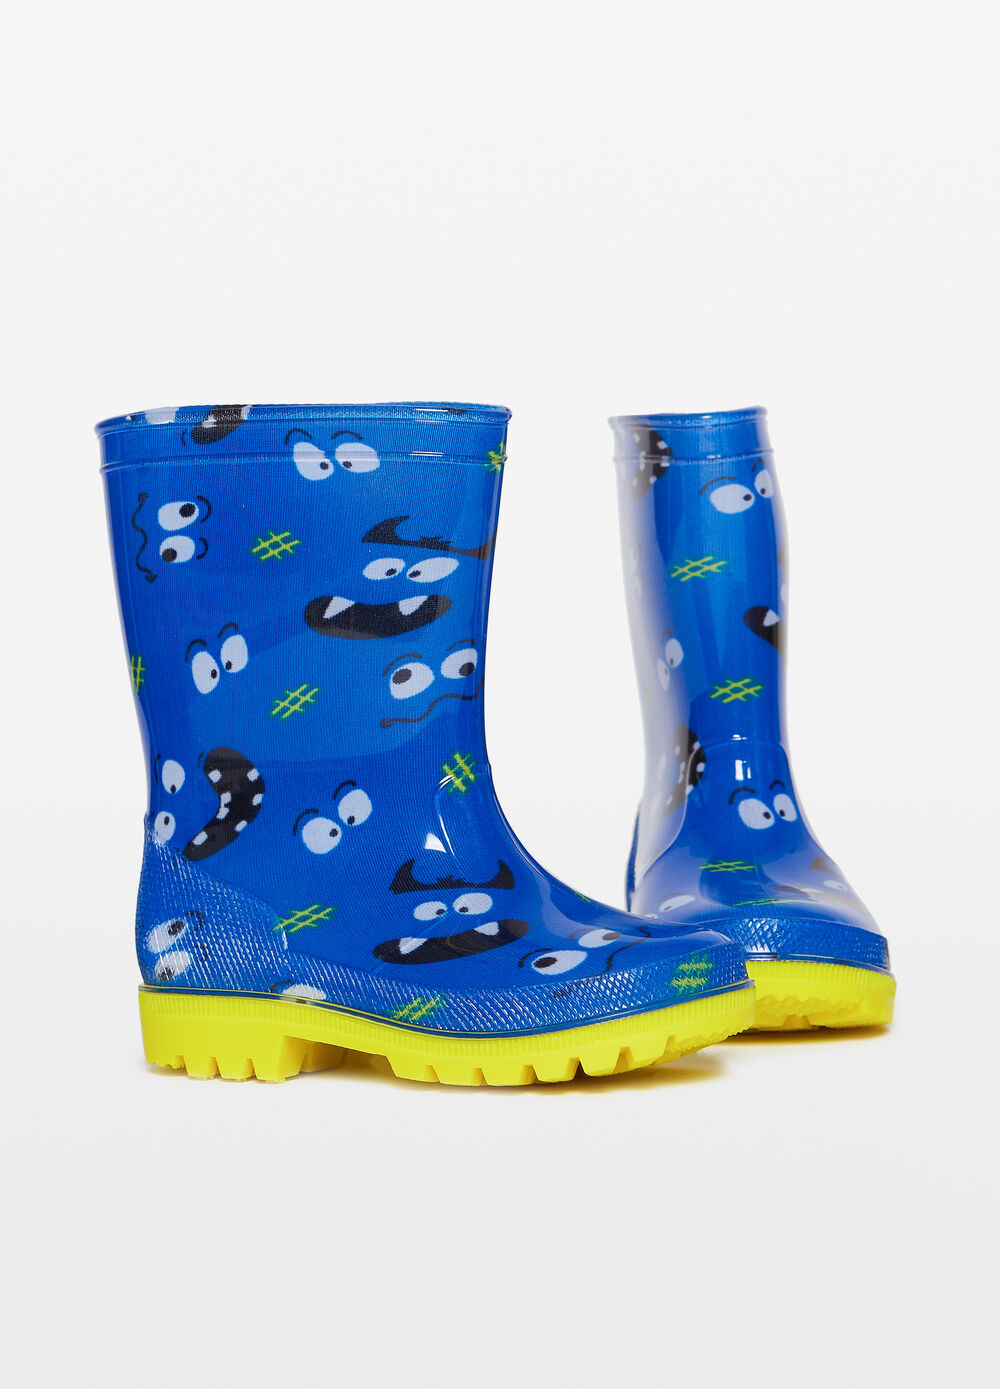 Monster patterned rain boots